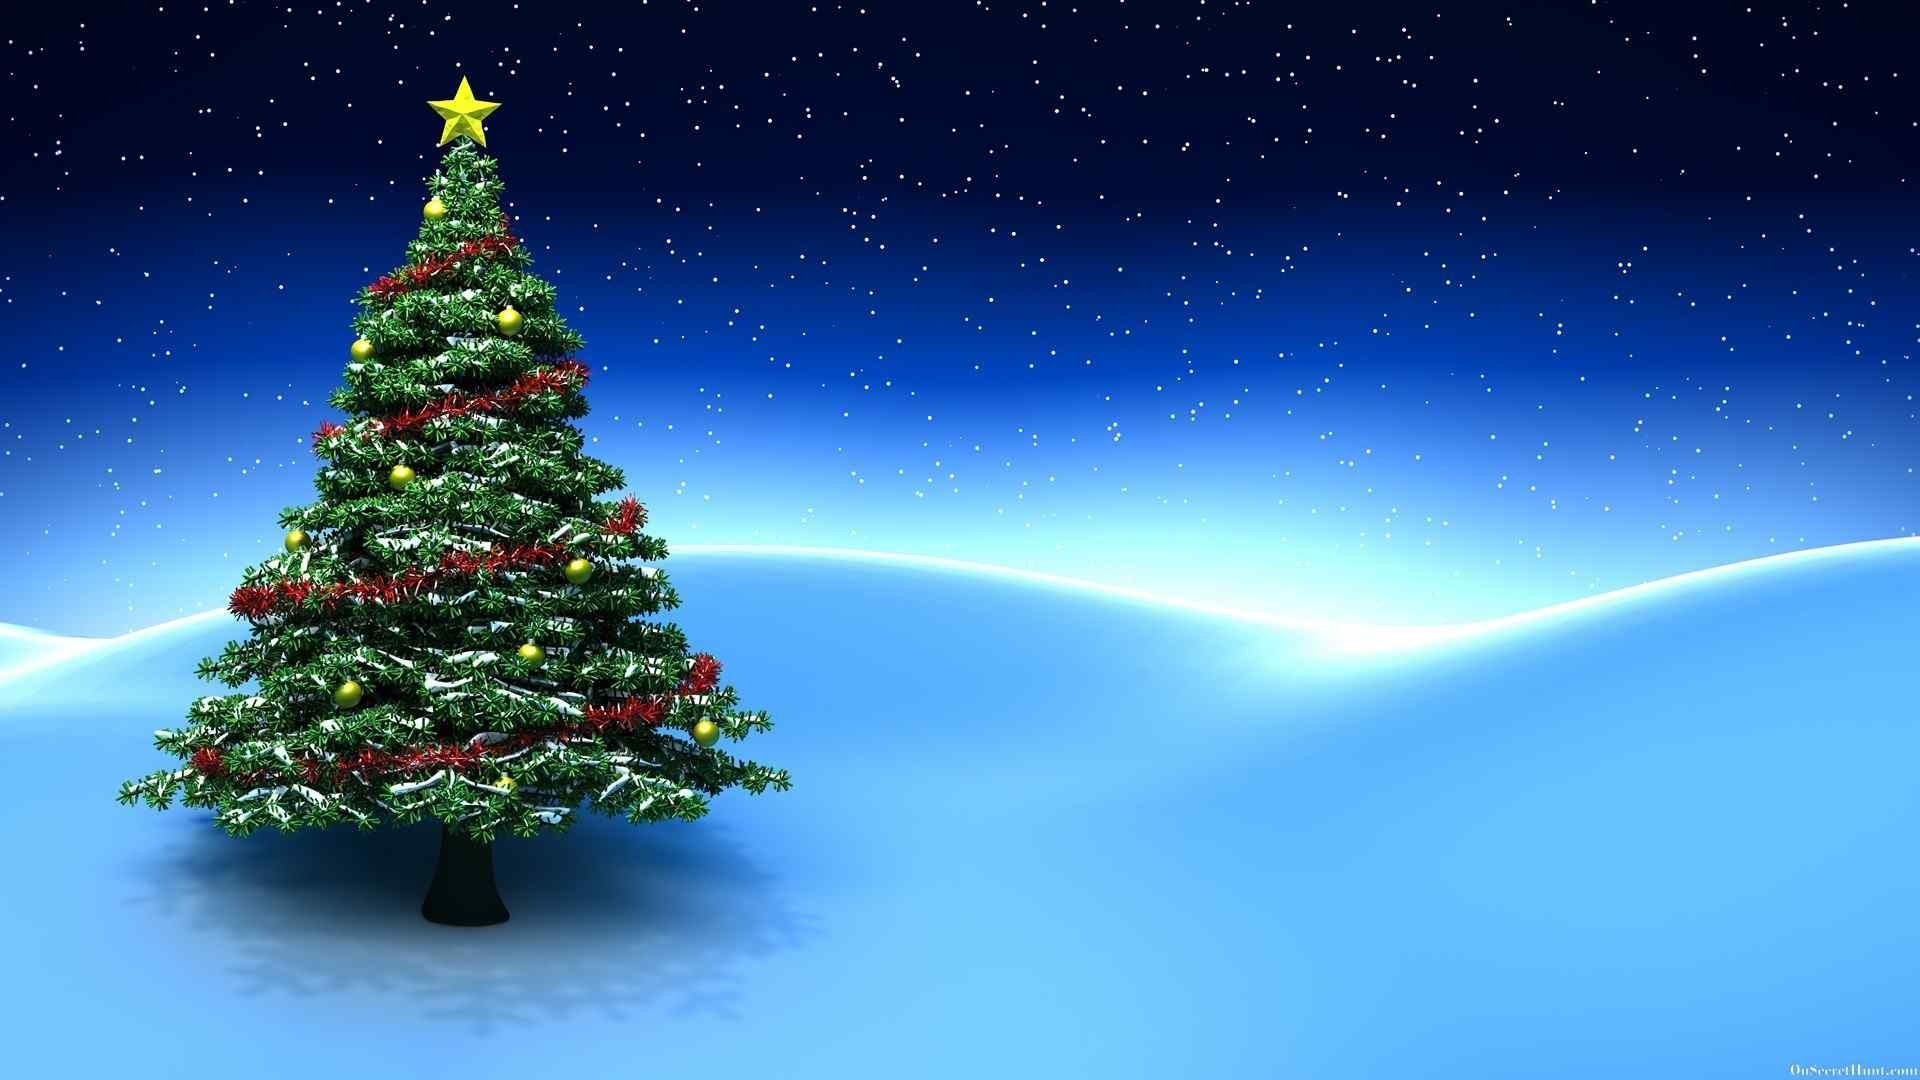 3d Christmas Backgrounds 59 Images